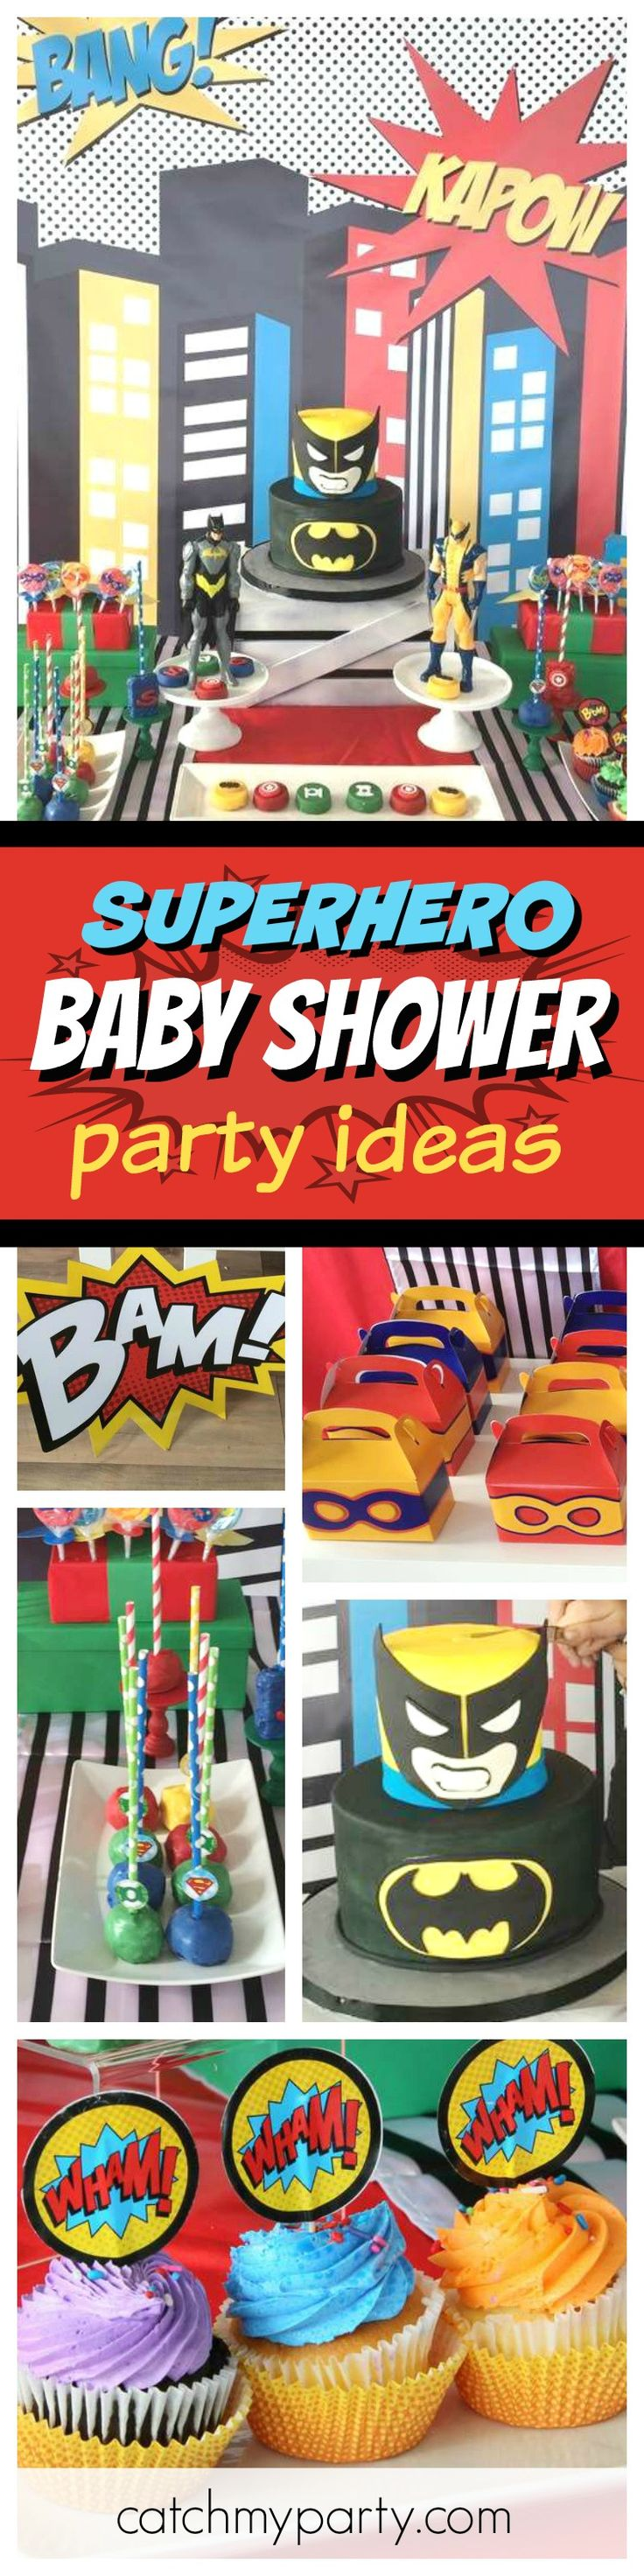 Check out this awesome Superhero themed Baby Shower!! The dessert table is fantastic!! See more party ideas and share yours at CatchMyParty.com